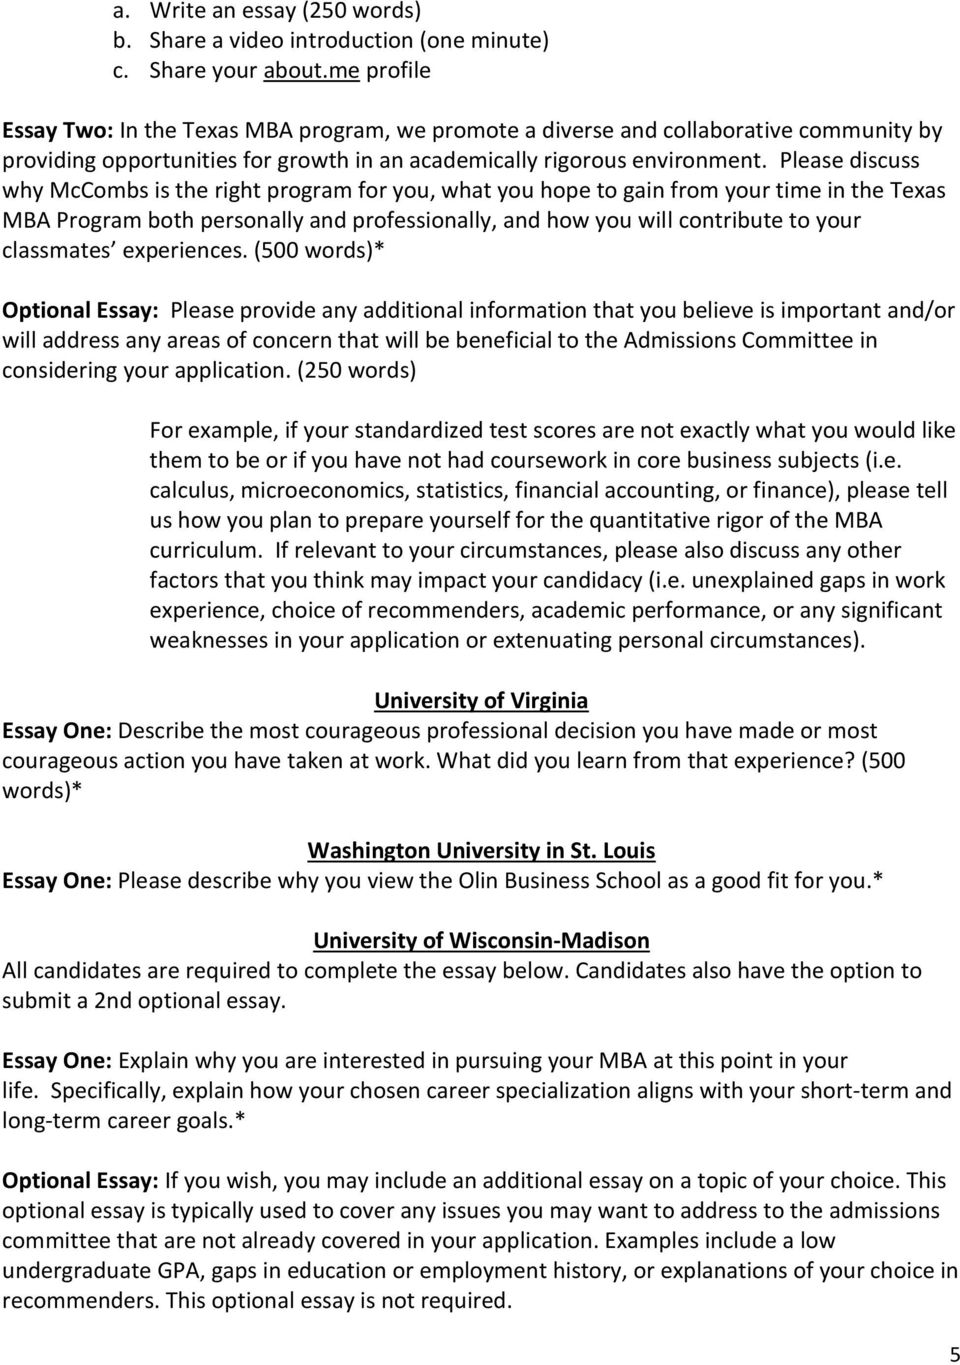 Best Dissertation Hypothesis Writers Site For Mba